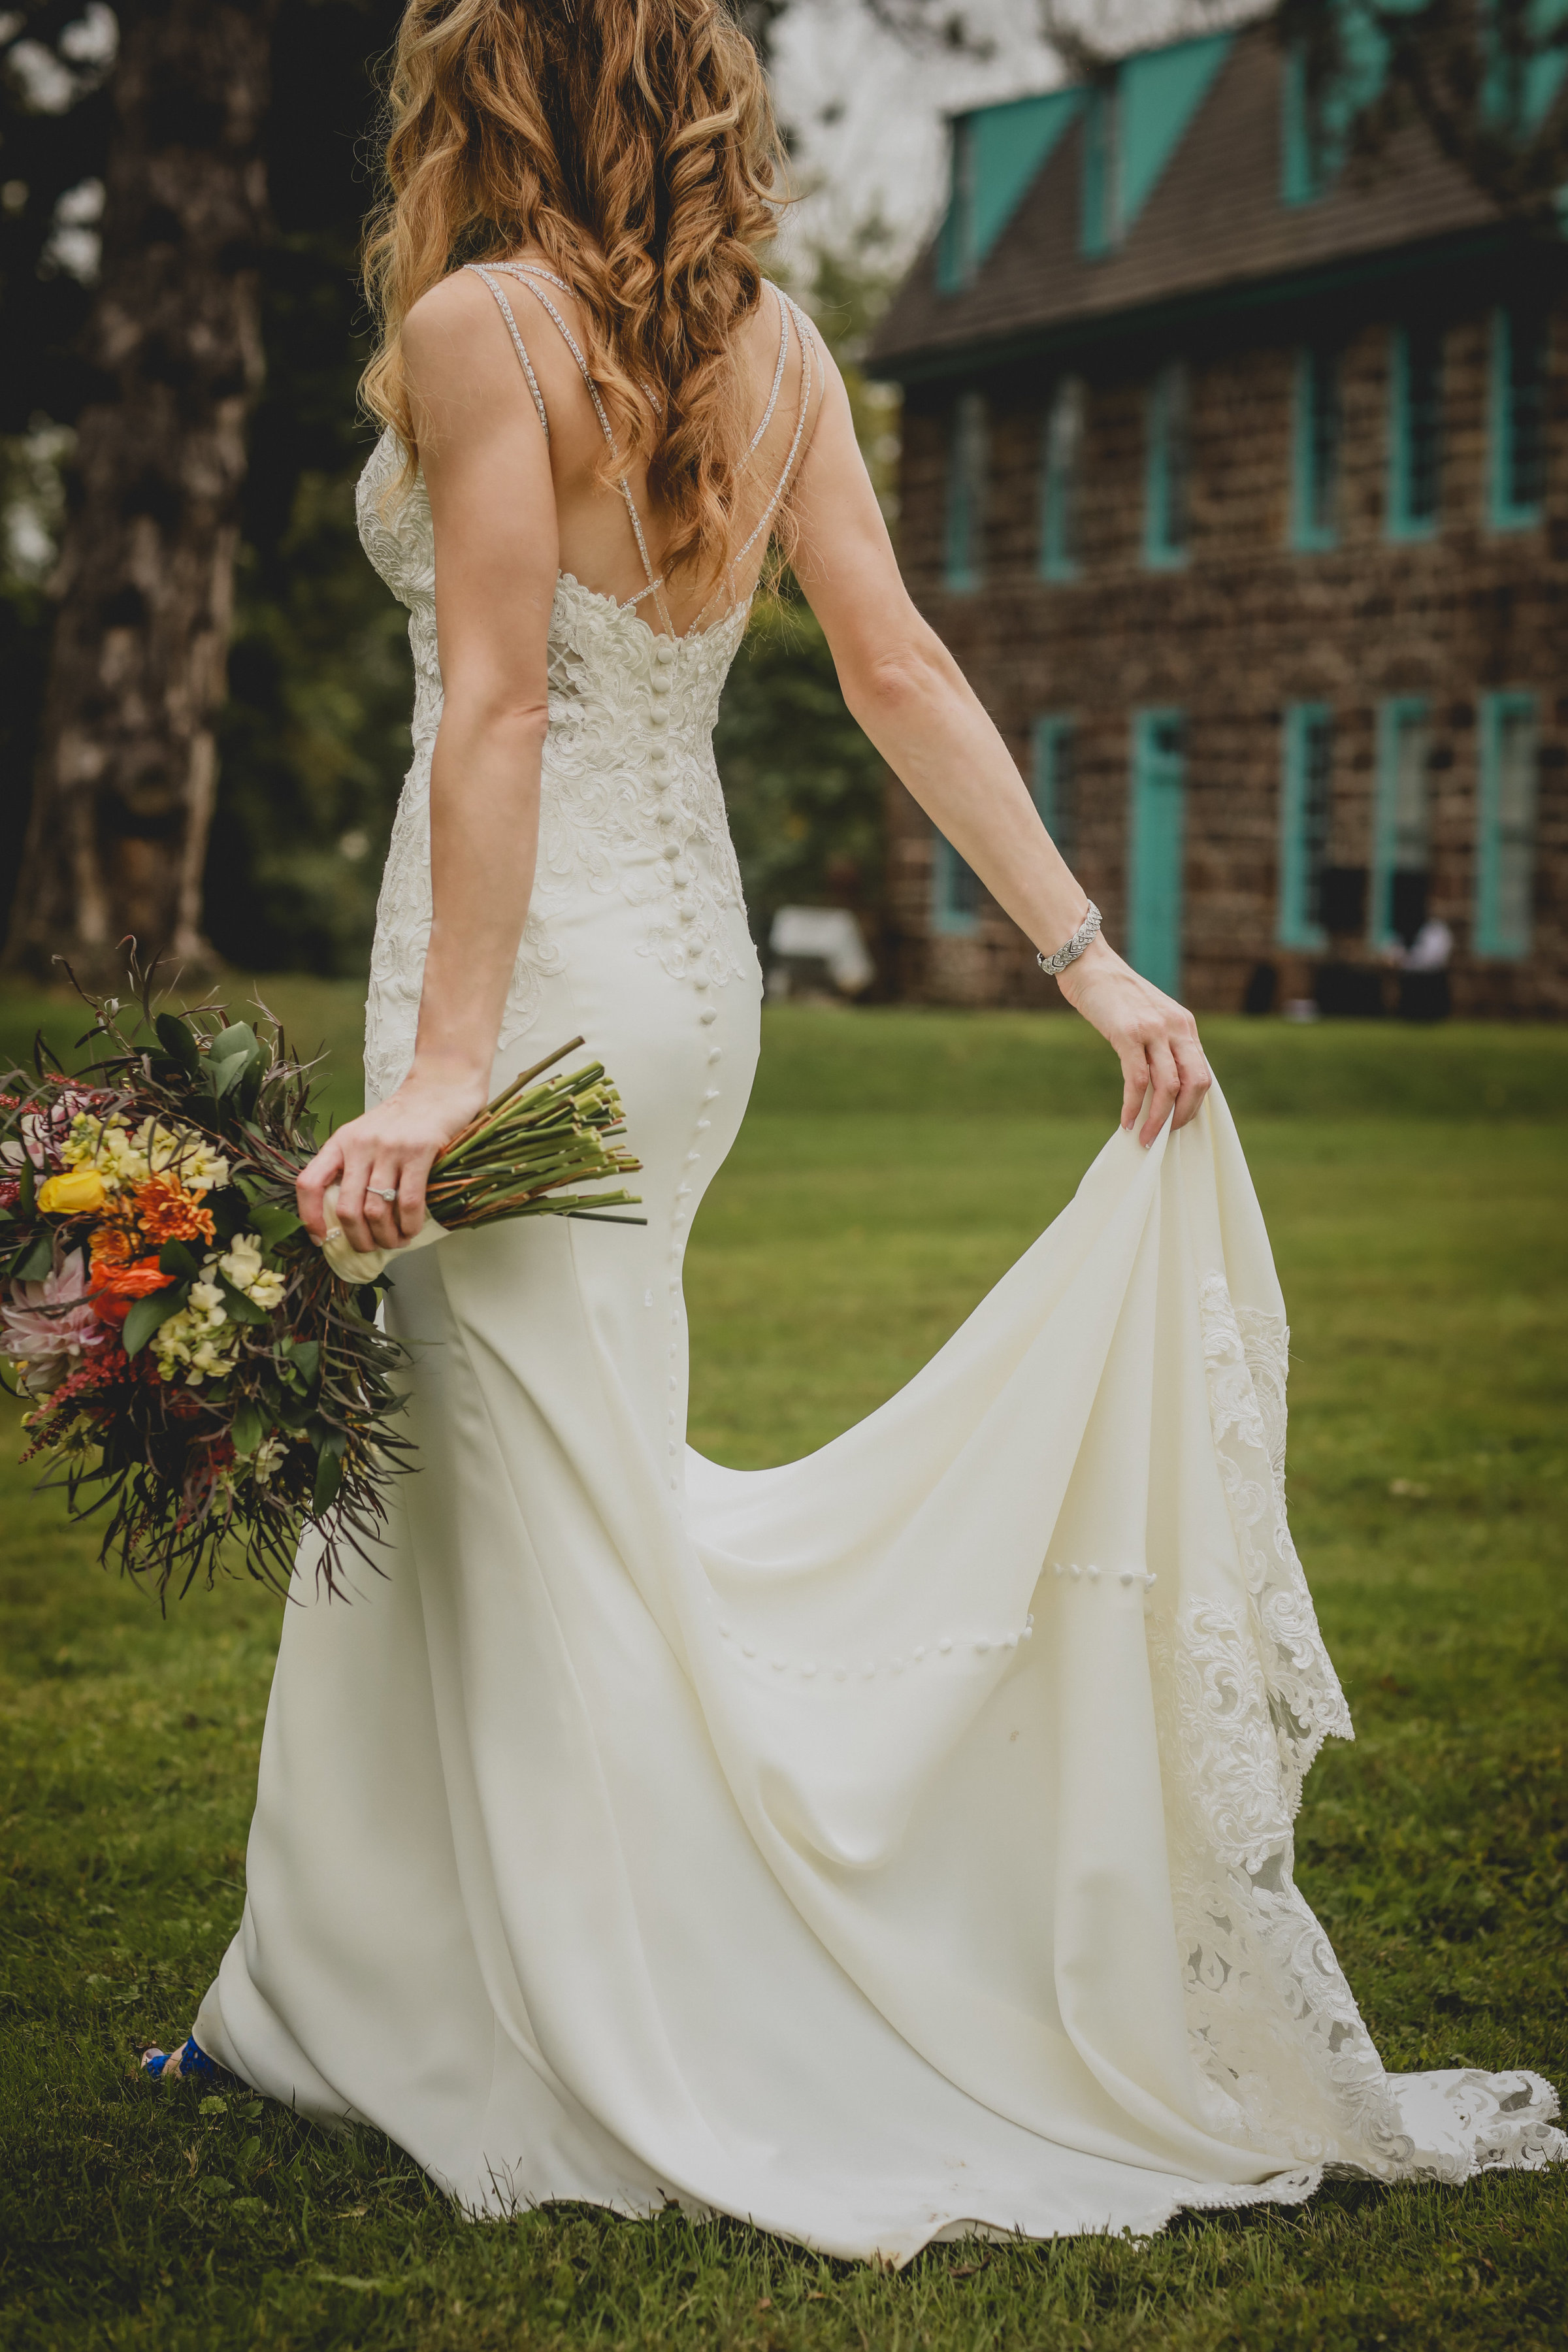 wedding_Dress_dani_bride_by_cassia_karin_photography-400